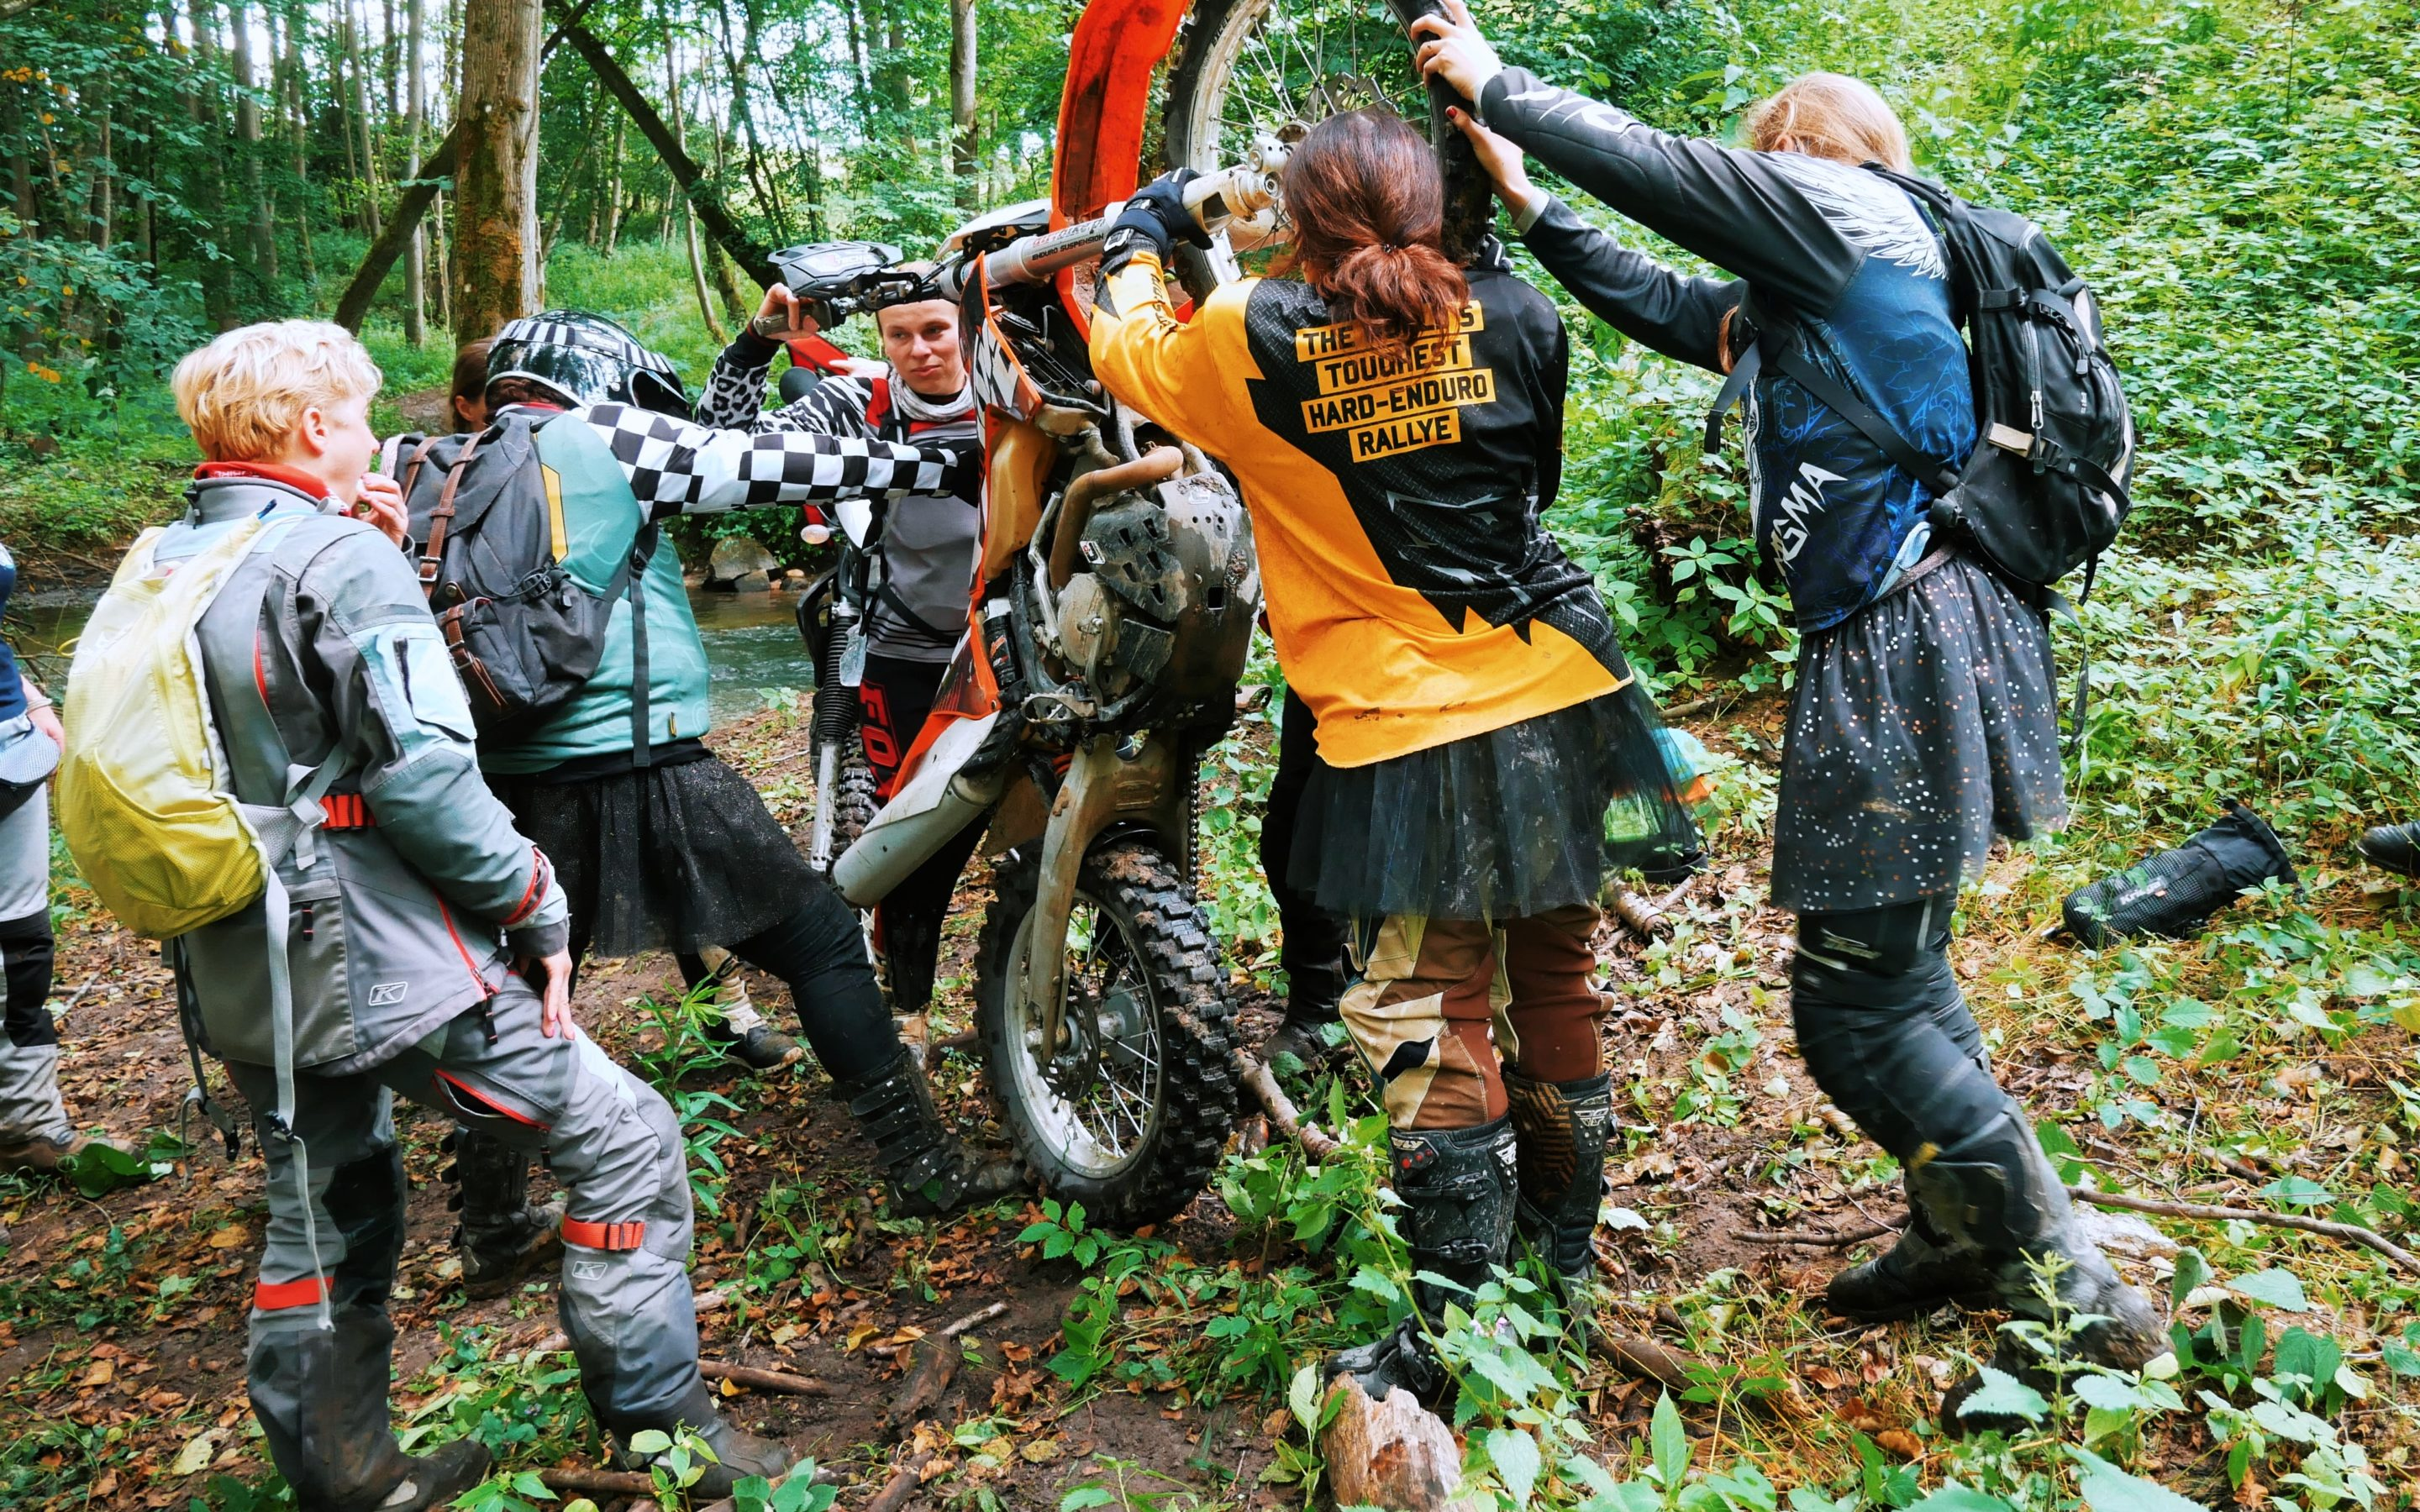 Women Riders' Off-Road Campout: Girls and Their Toys